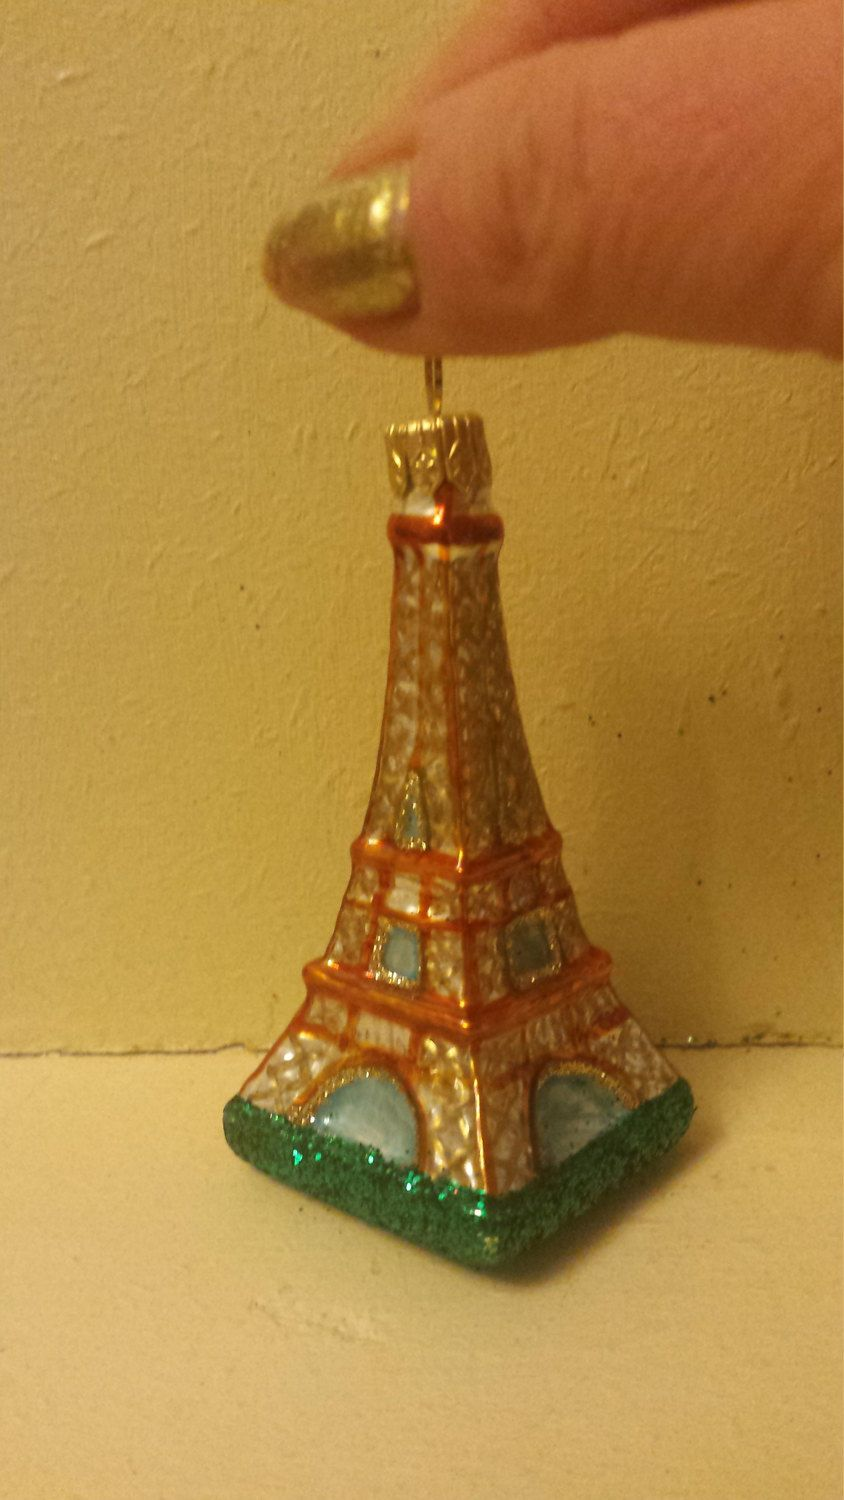 Eiffel tower christmas tree ornament - Blown Glass Paris Landmark Eiffel Tower Christmas Tree Ornament Made In Poland